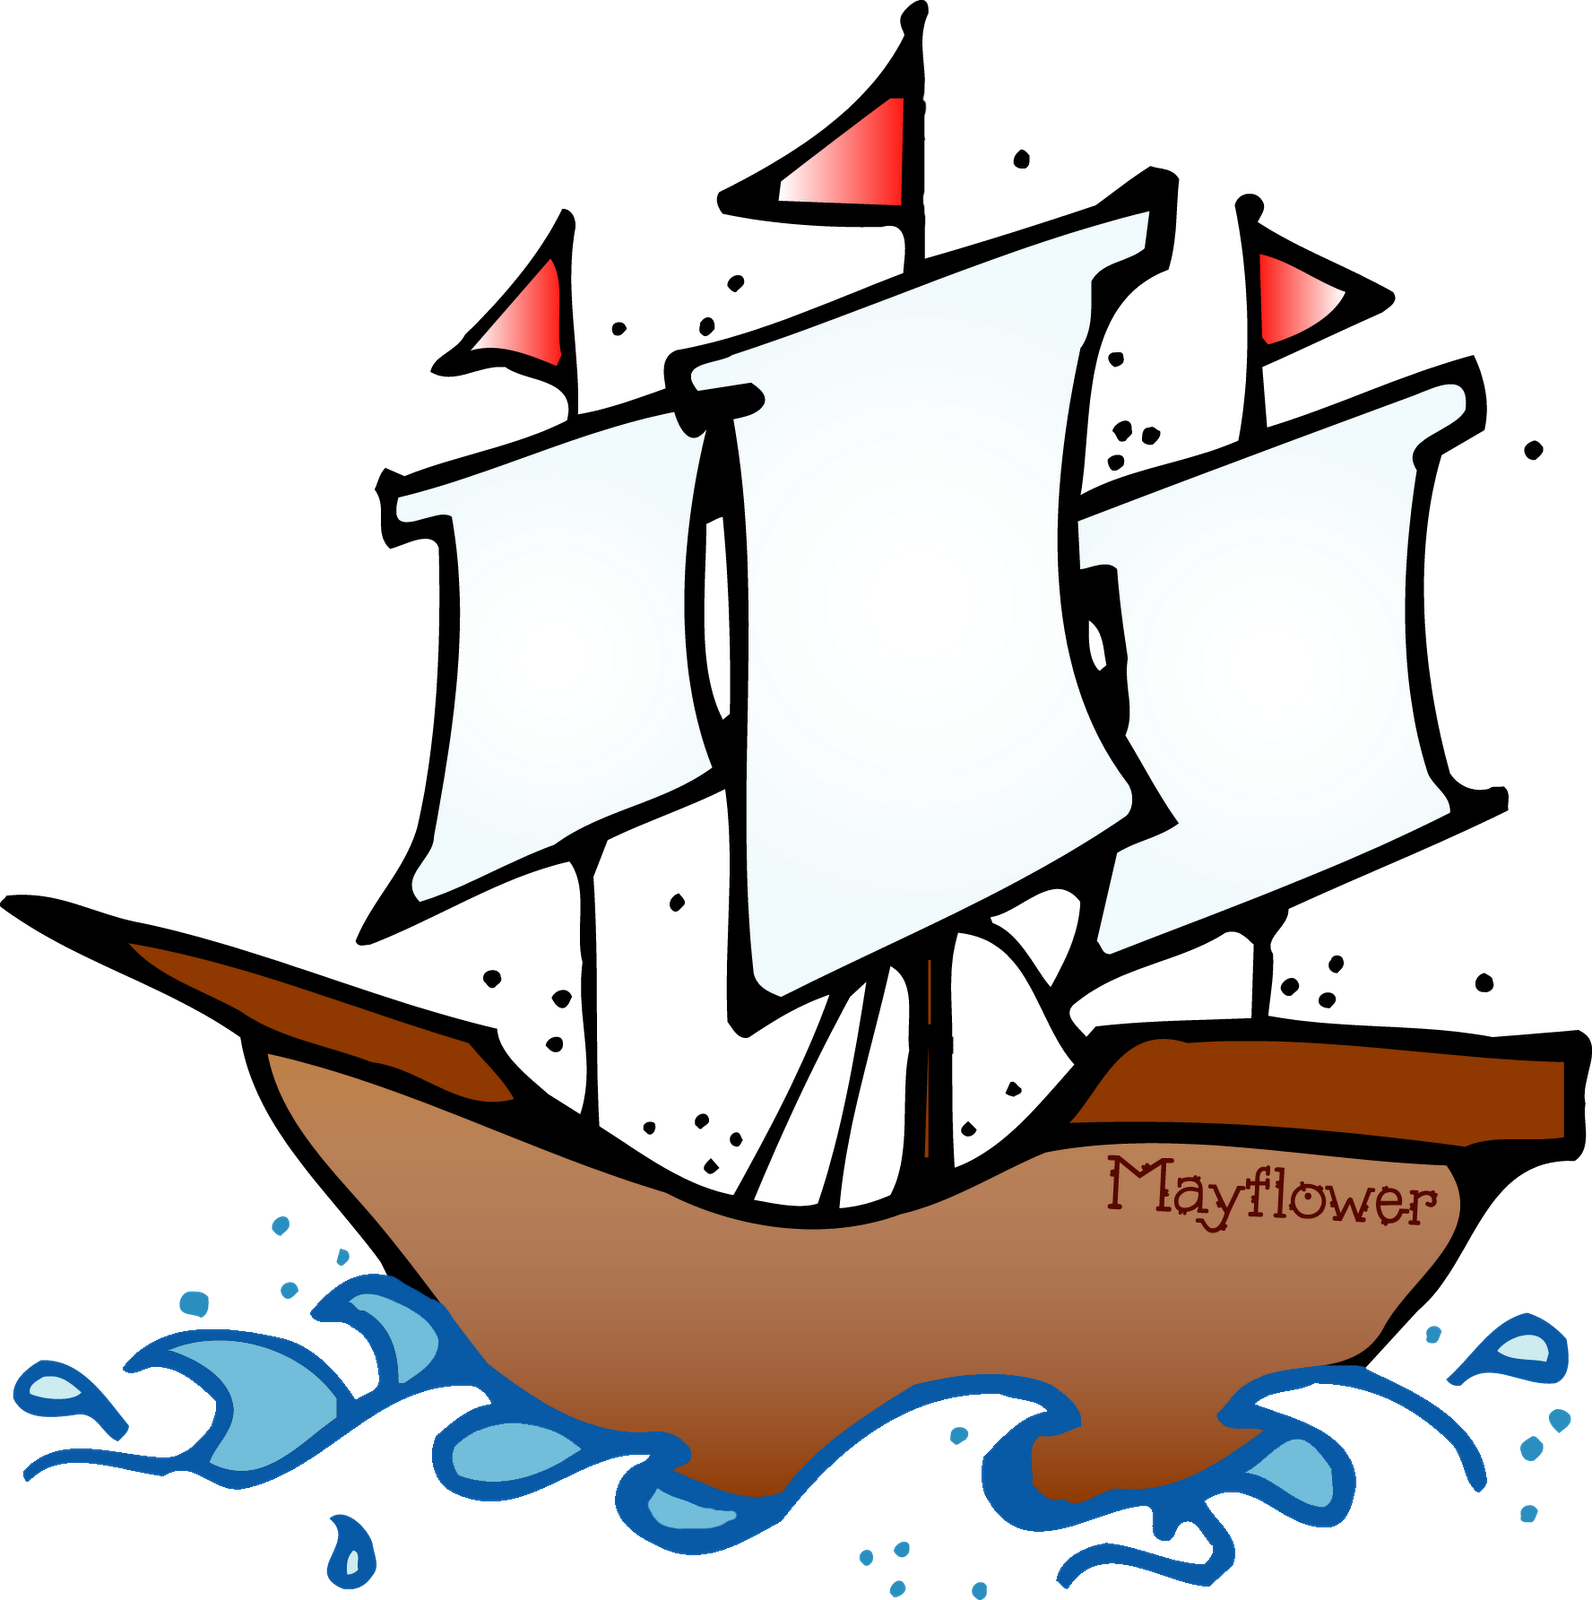 Thanksgiving boat clipart clipart library library 28+ Collection of Mayflower Clipart | High quality, free cliparts ... clipart library library